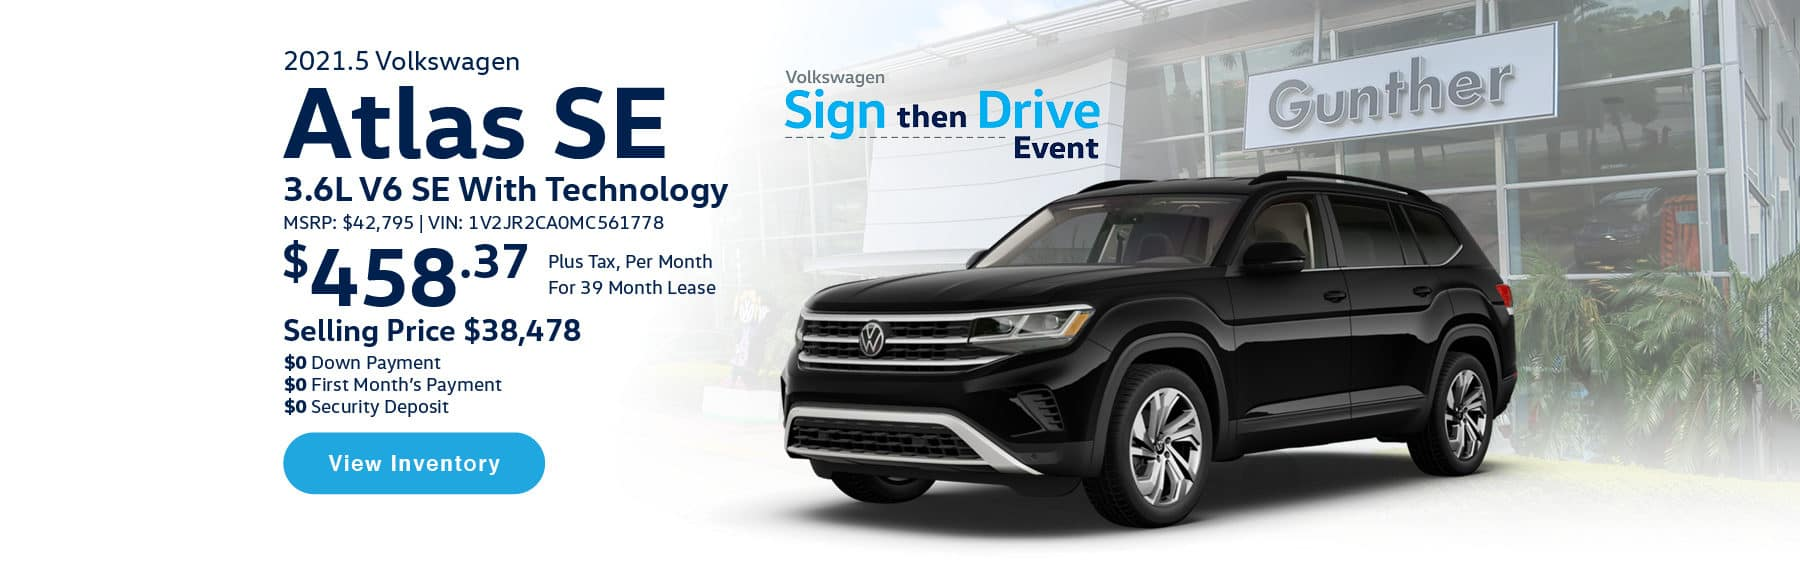 Lease the 2021.5 Atlas 3.6L V6 SE w/Technology for $458.37 per month, plus tax for 39 months. Selling price is $38,478. $0 Down Payment, $0 First Month's Payment, $0 Security Deposit. $42,795 MSRP. Vin #: 1V2JR2CA0MC561778. Click or tap here to visit our inventory.